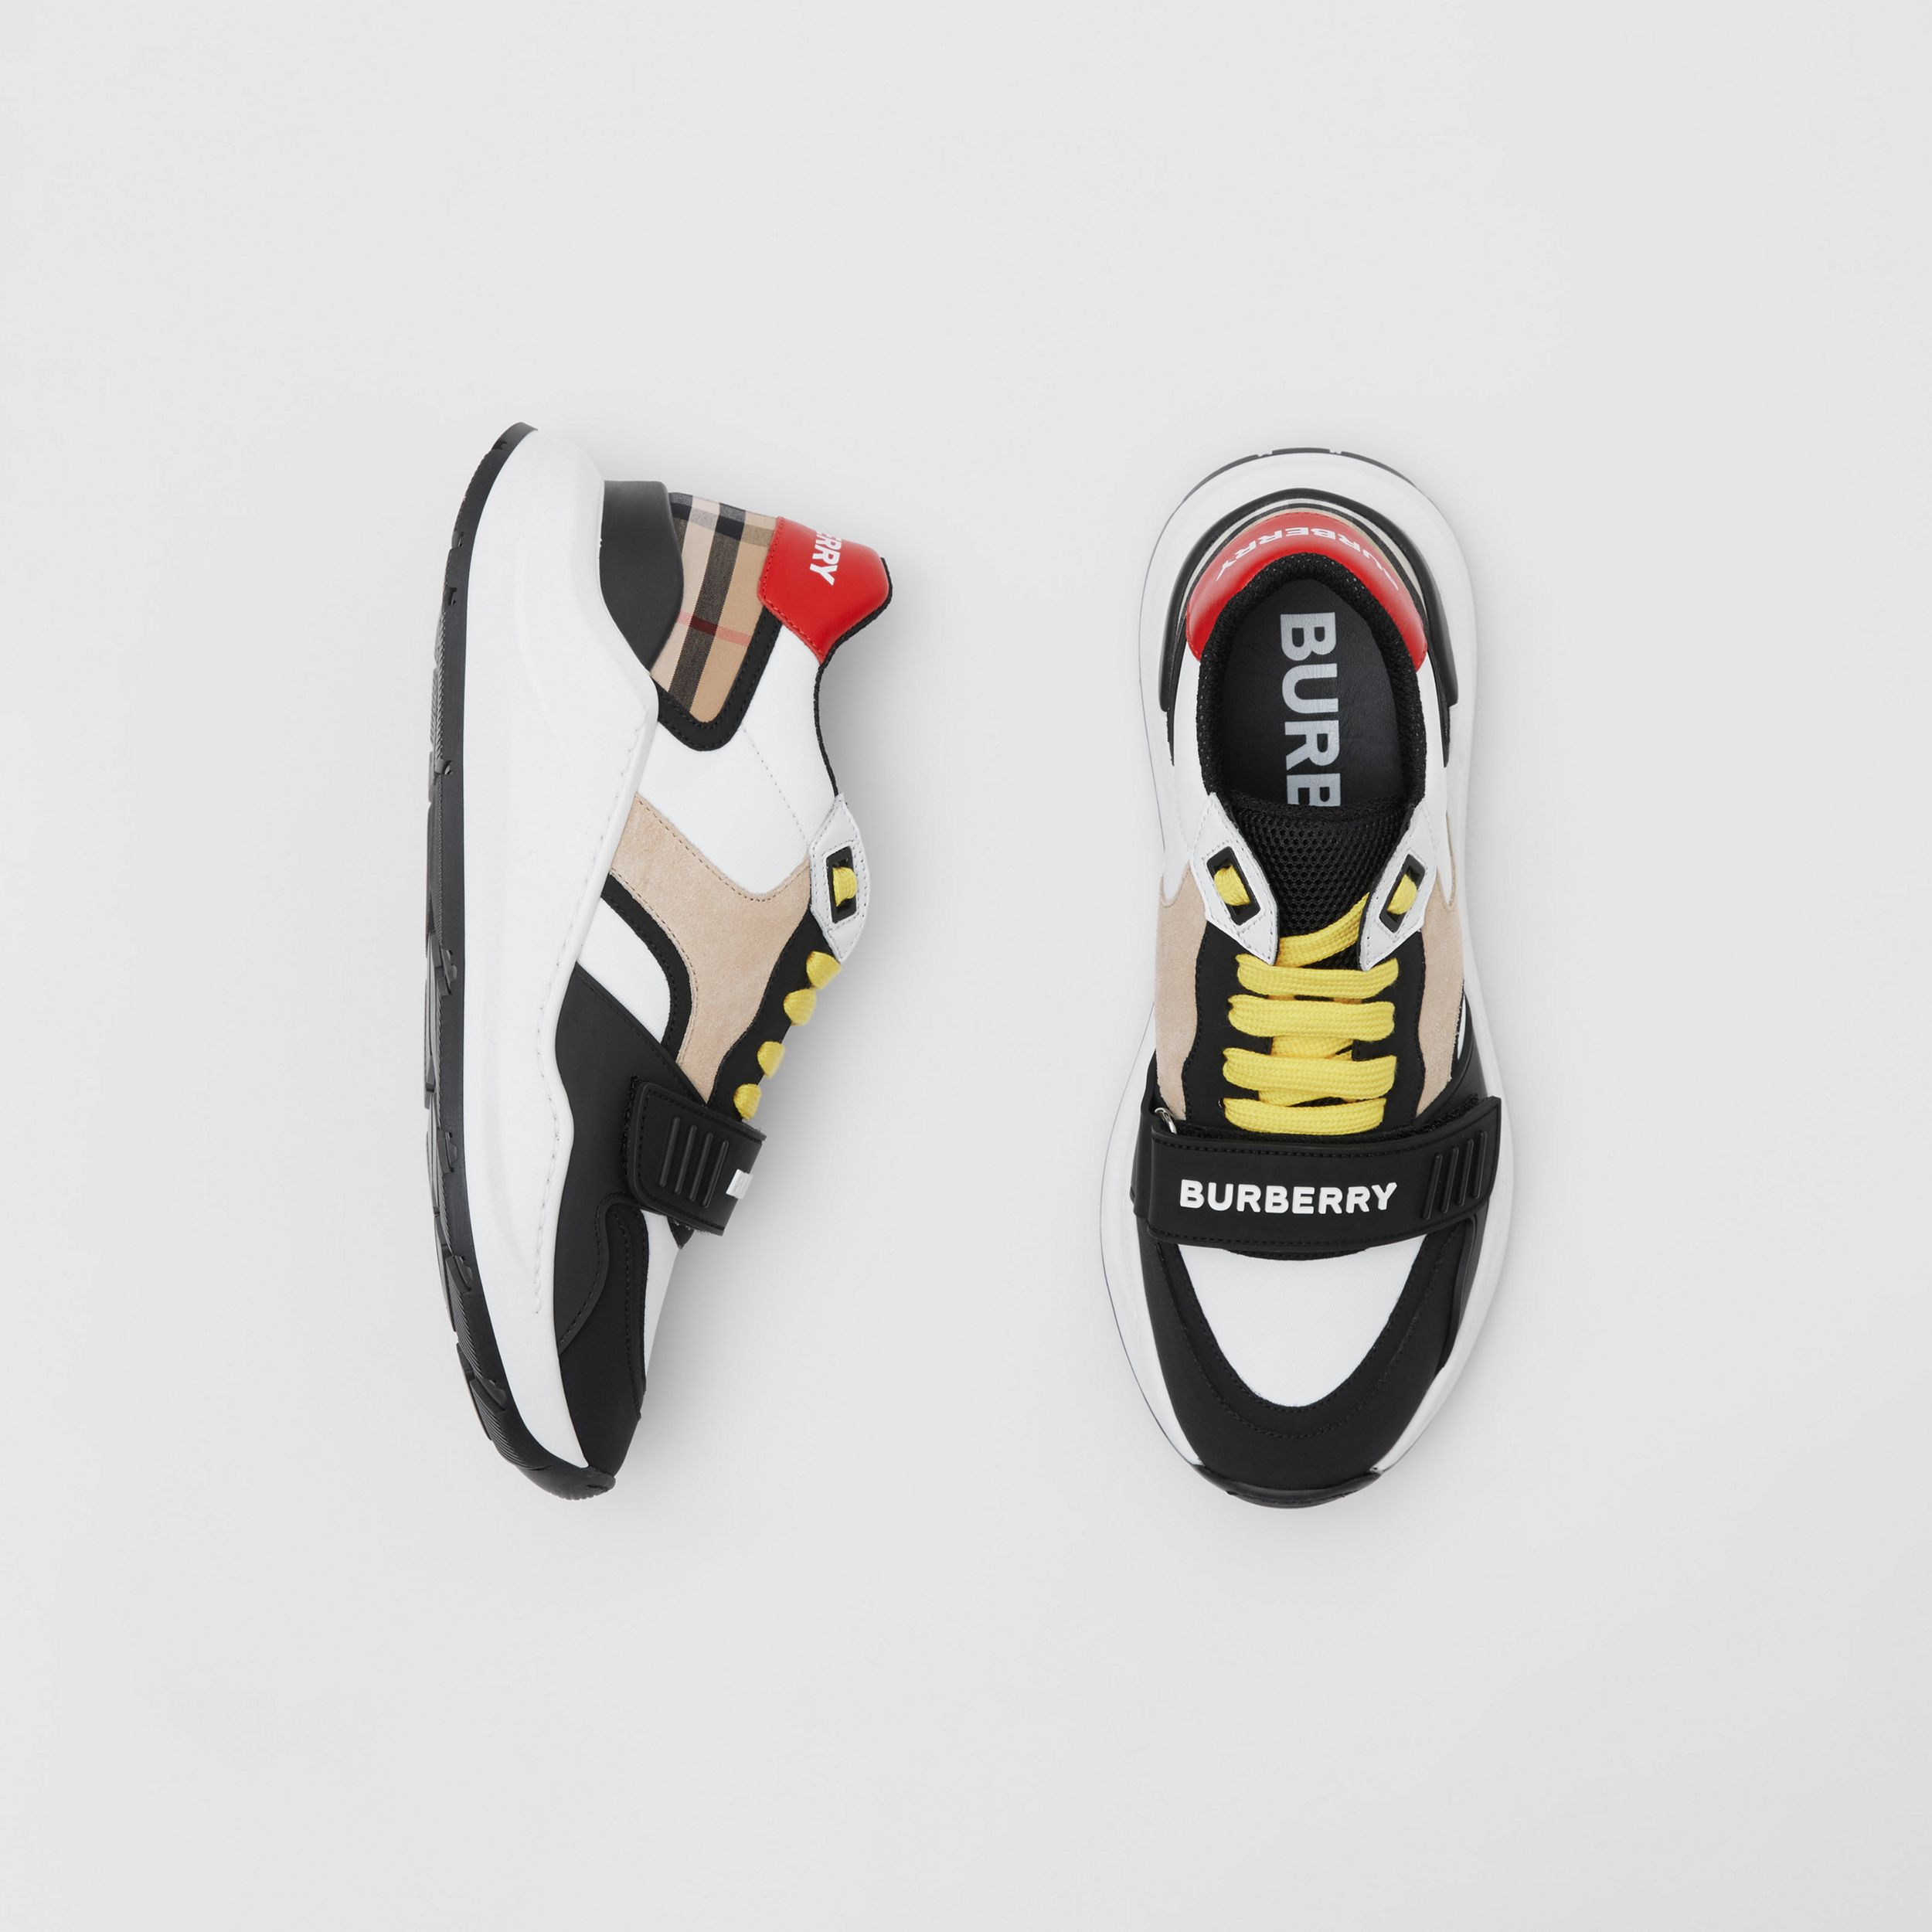 Nylon, Suede and Vintage Check Sneakers in Archive Beige - Women | Burberry - 1